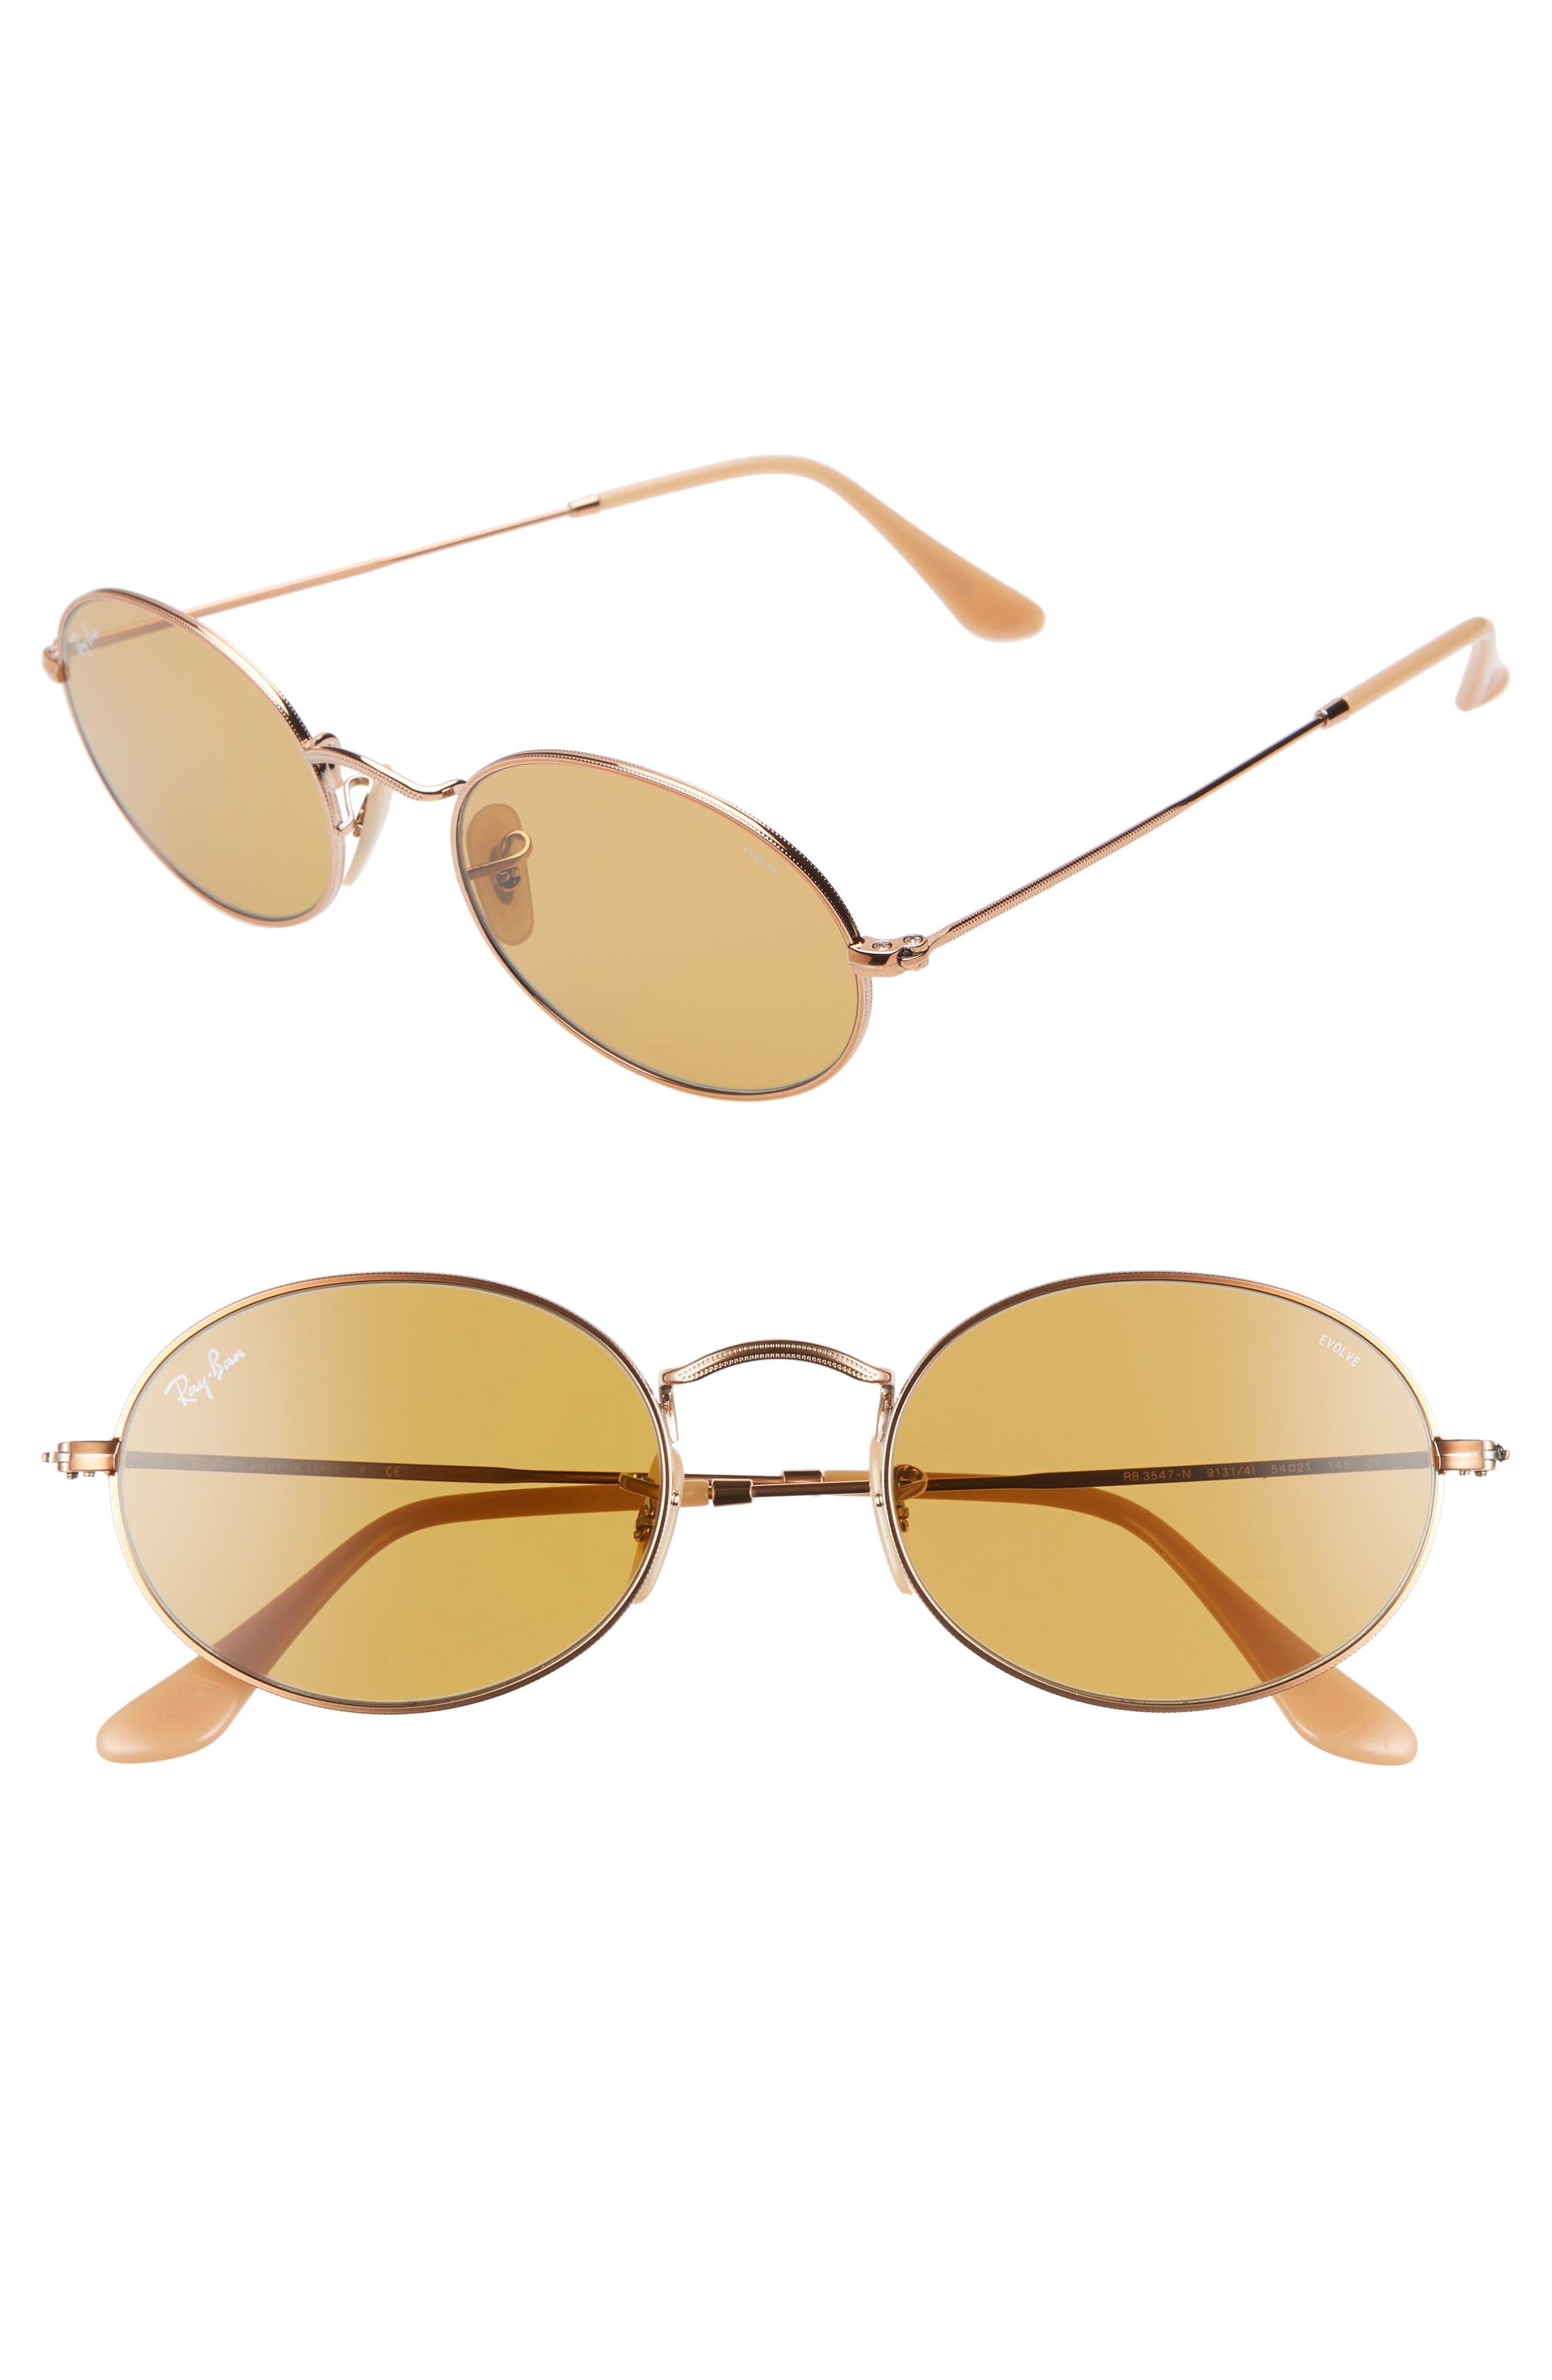 RAY-BAN,                             Evolve 54mm Polarized Oval Sunglasses,                             Main thumbnail 1, color,                             GOLD/ COPPER SOLID